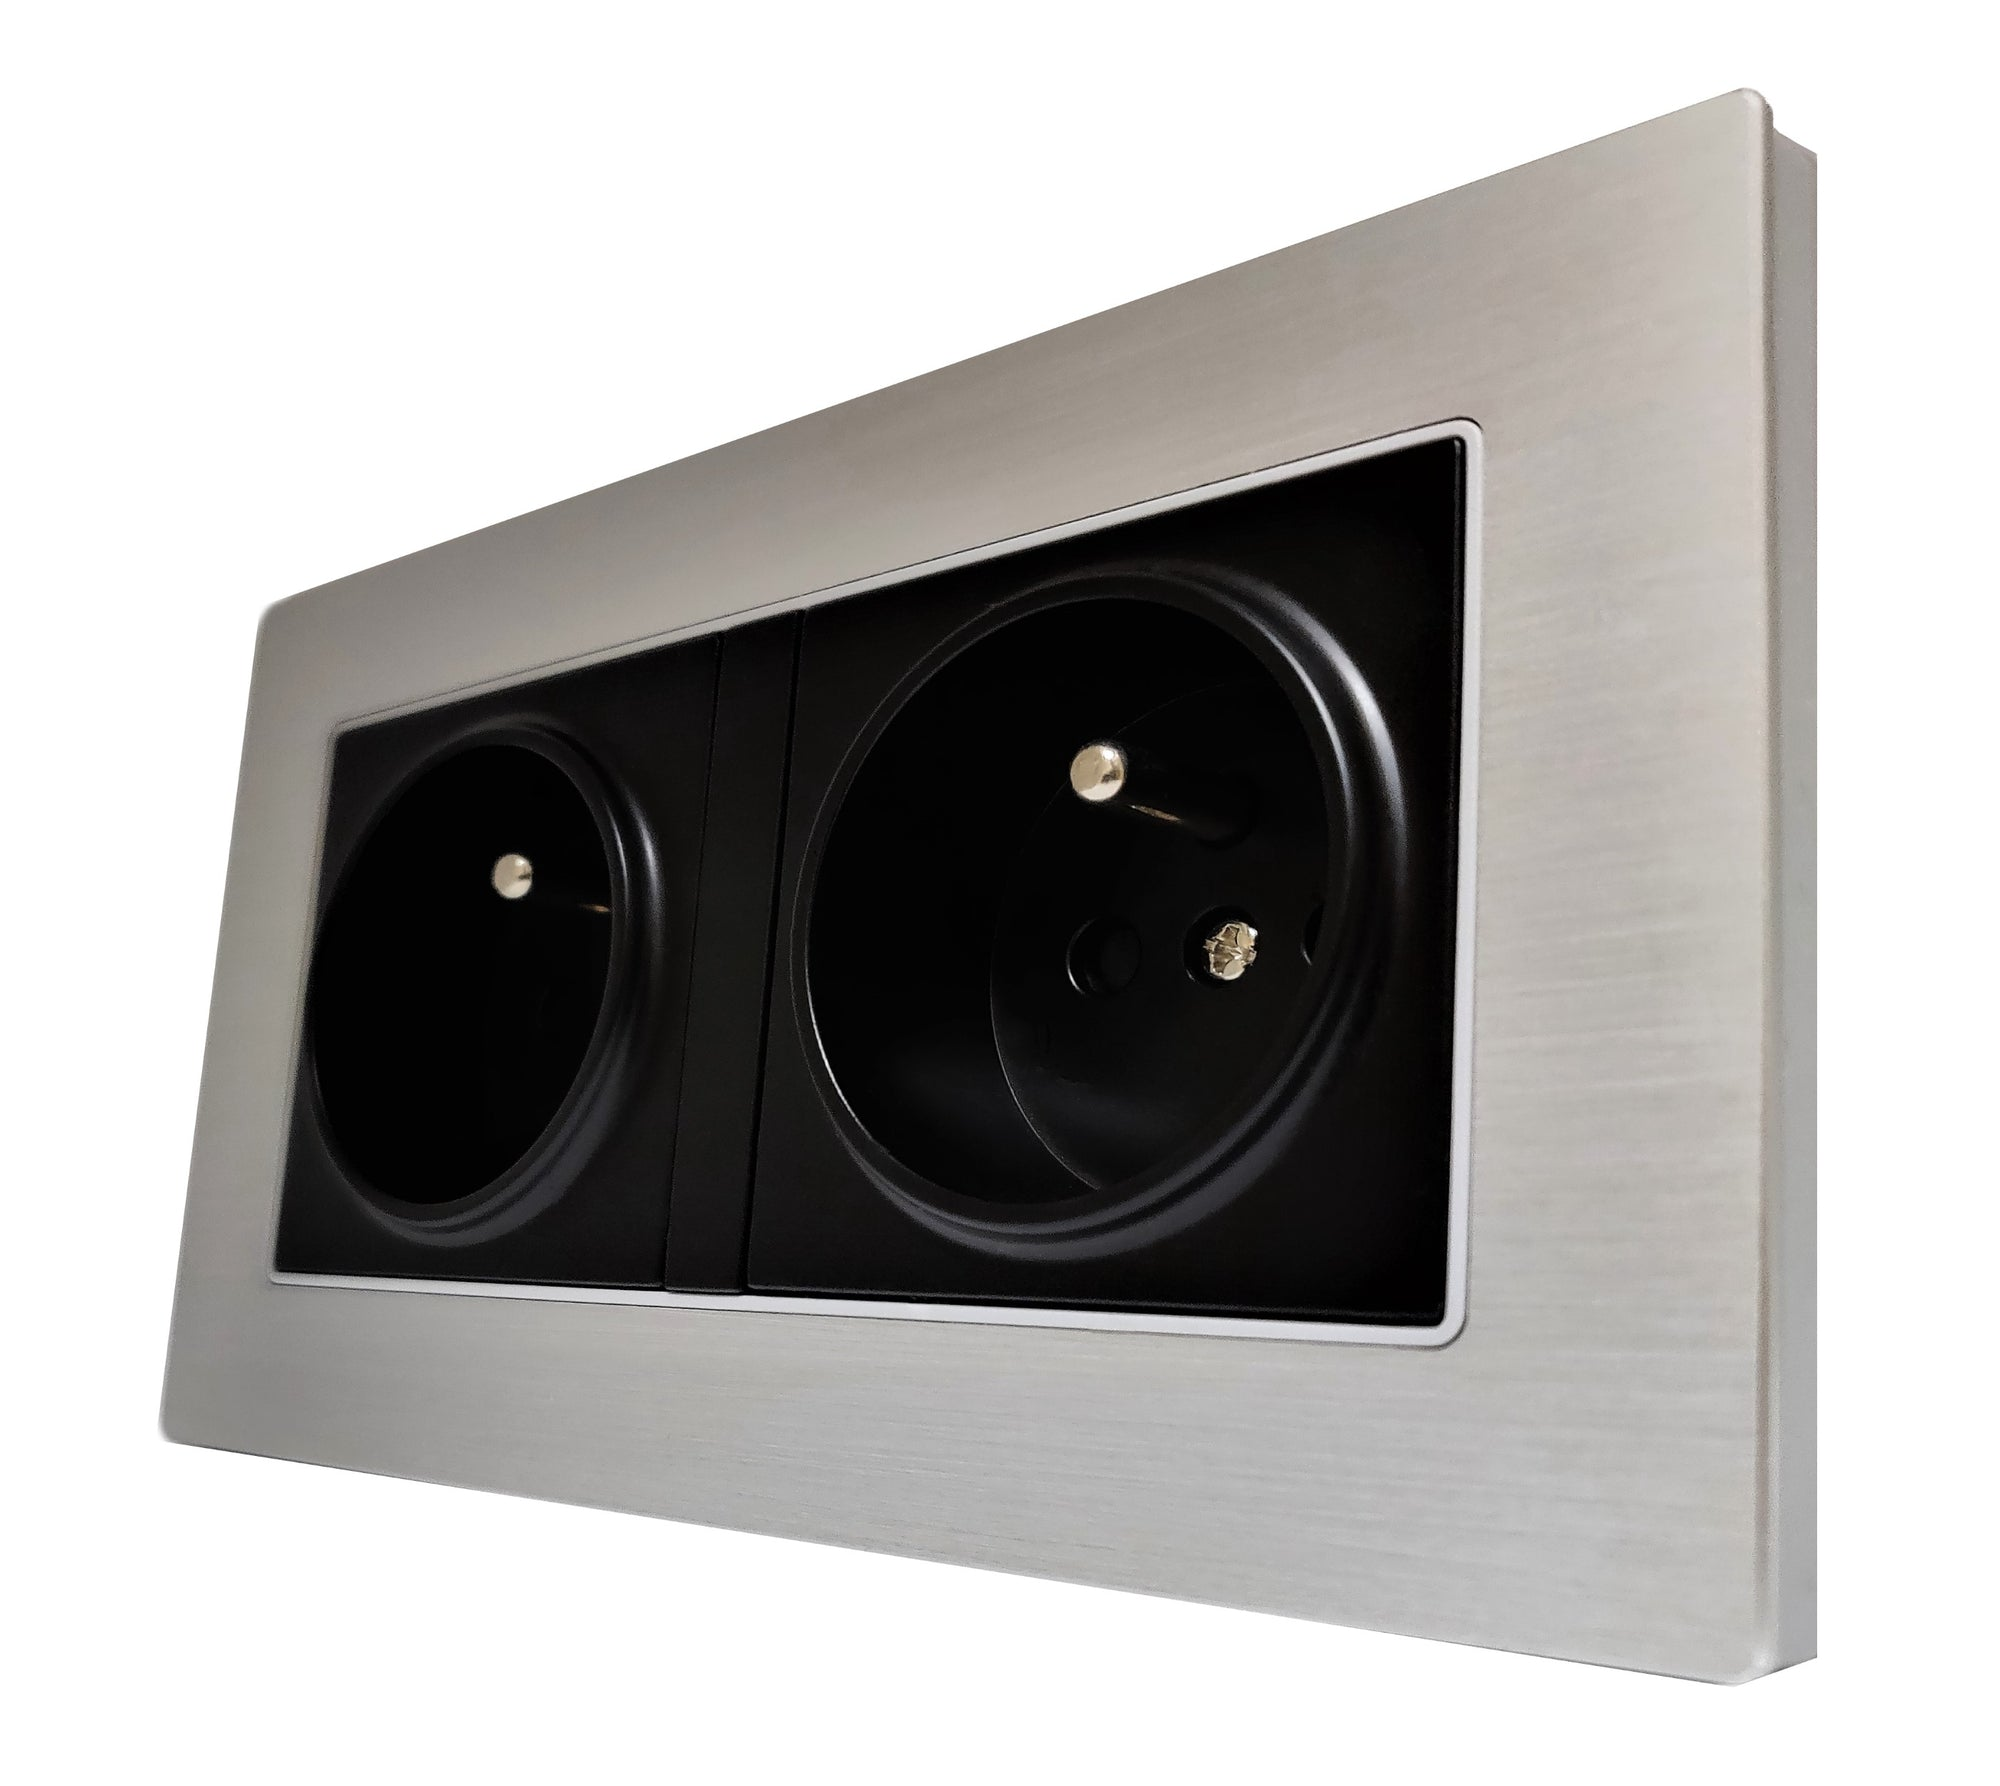 Double French EU 16A 2-Pin AC Wall Power Socket in Silver Brushed Alum Frame & Black Centre